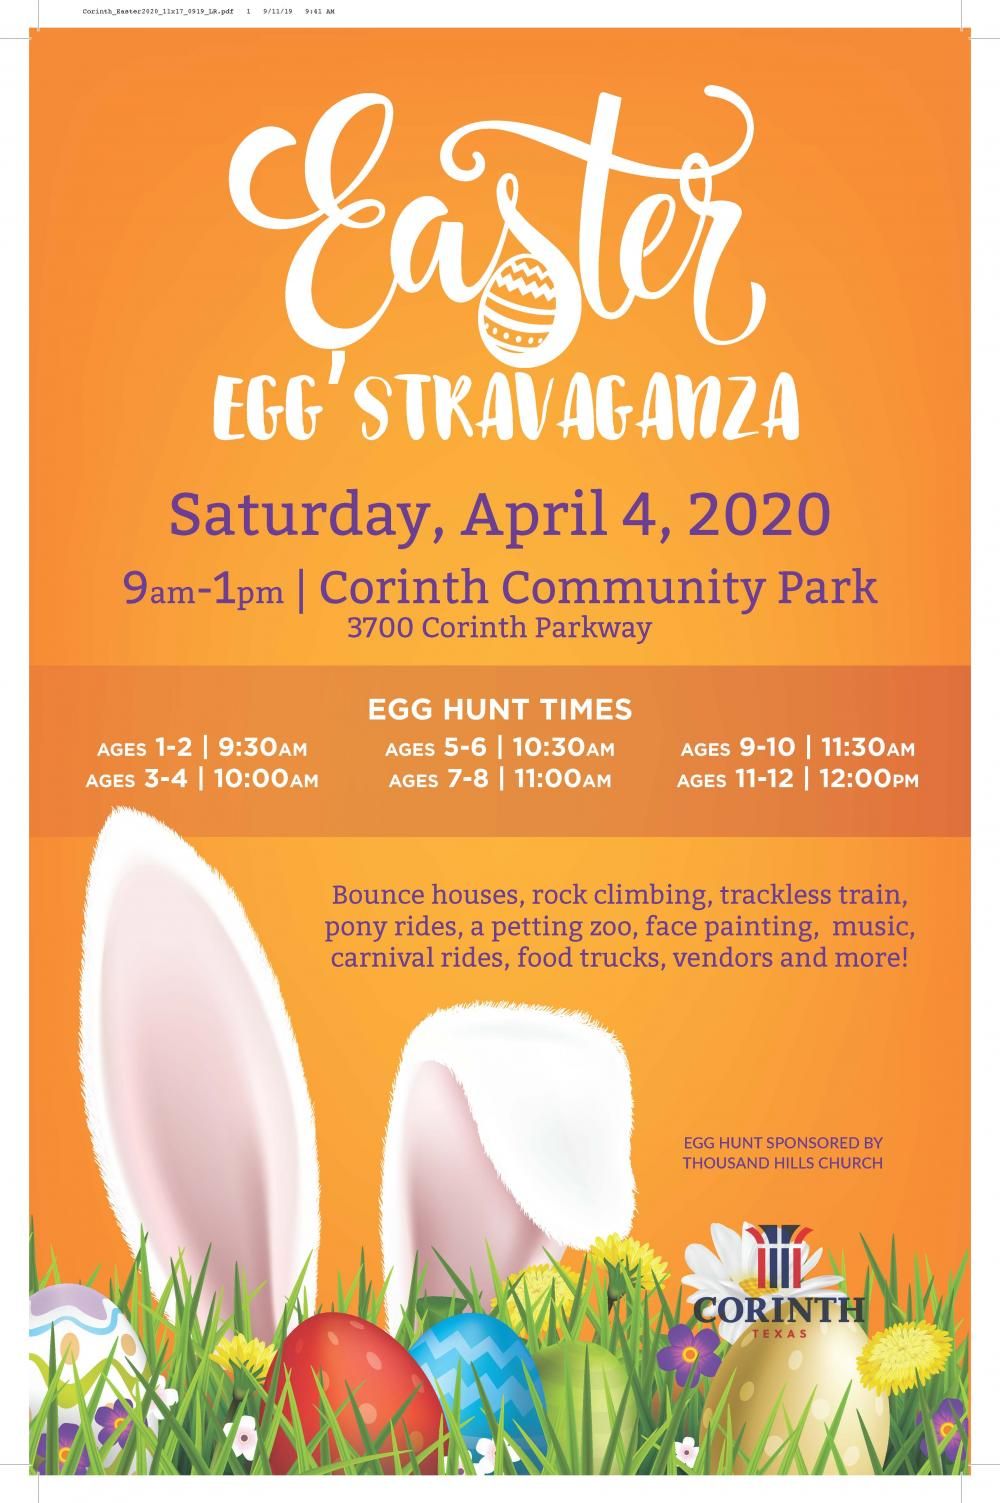 Easter Events Near Me 2020.Easter Egg Stravaganza City Of Corinth Texas